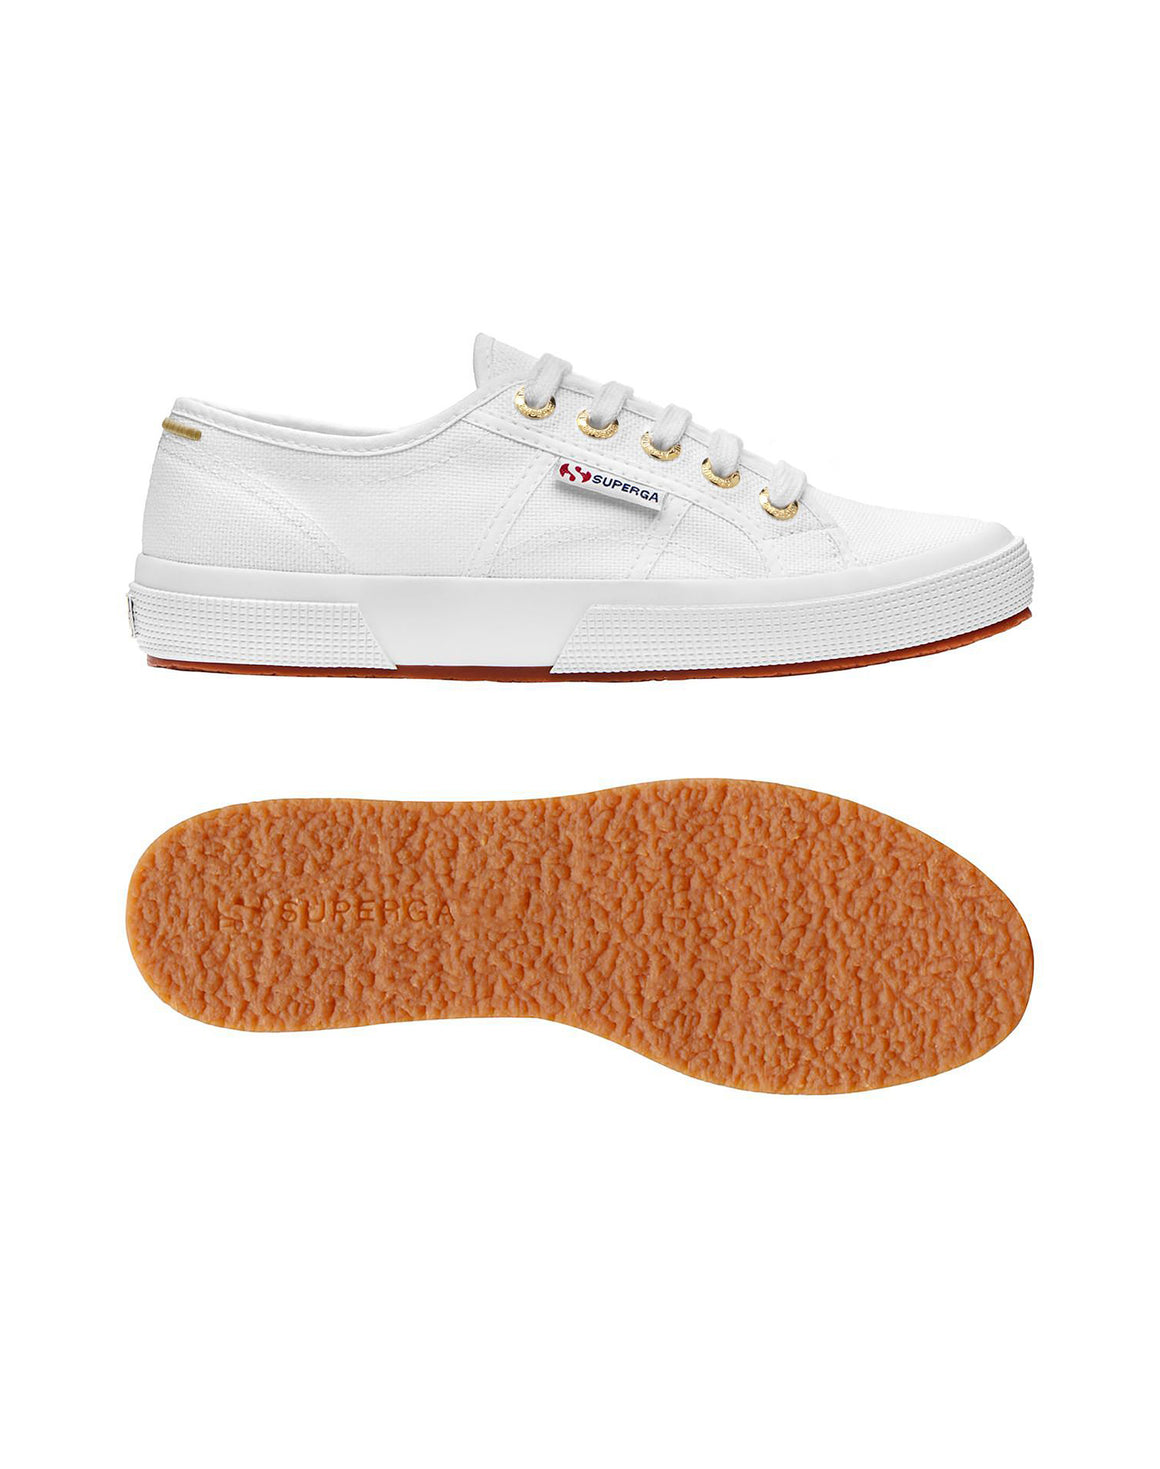 Superga Womens 2750 Cotu - White/Gold